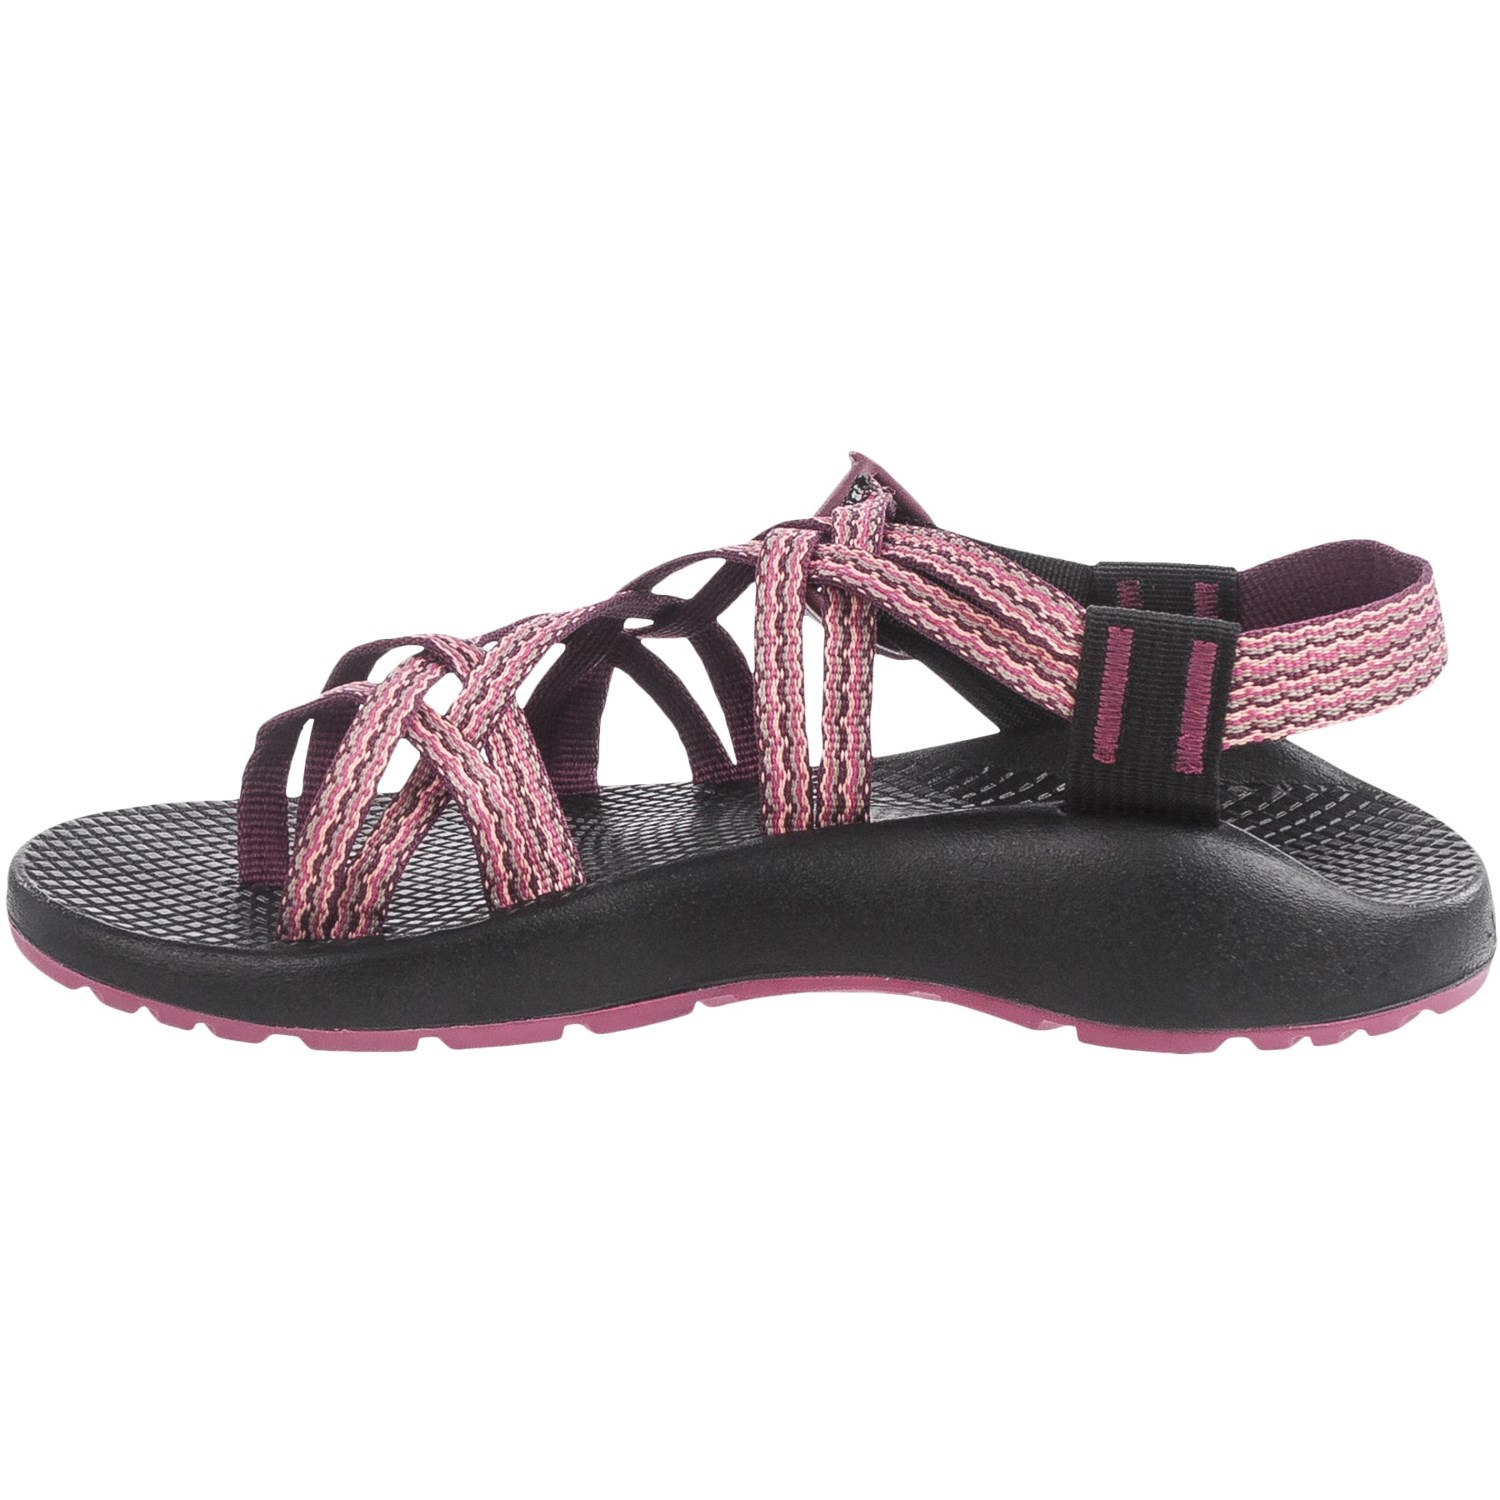 b6d44dddb600 Chaco ZX 2® Classic Sport Sandals (For Women) - Save 42%